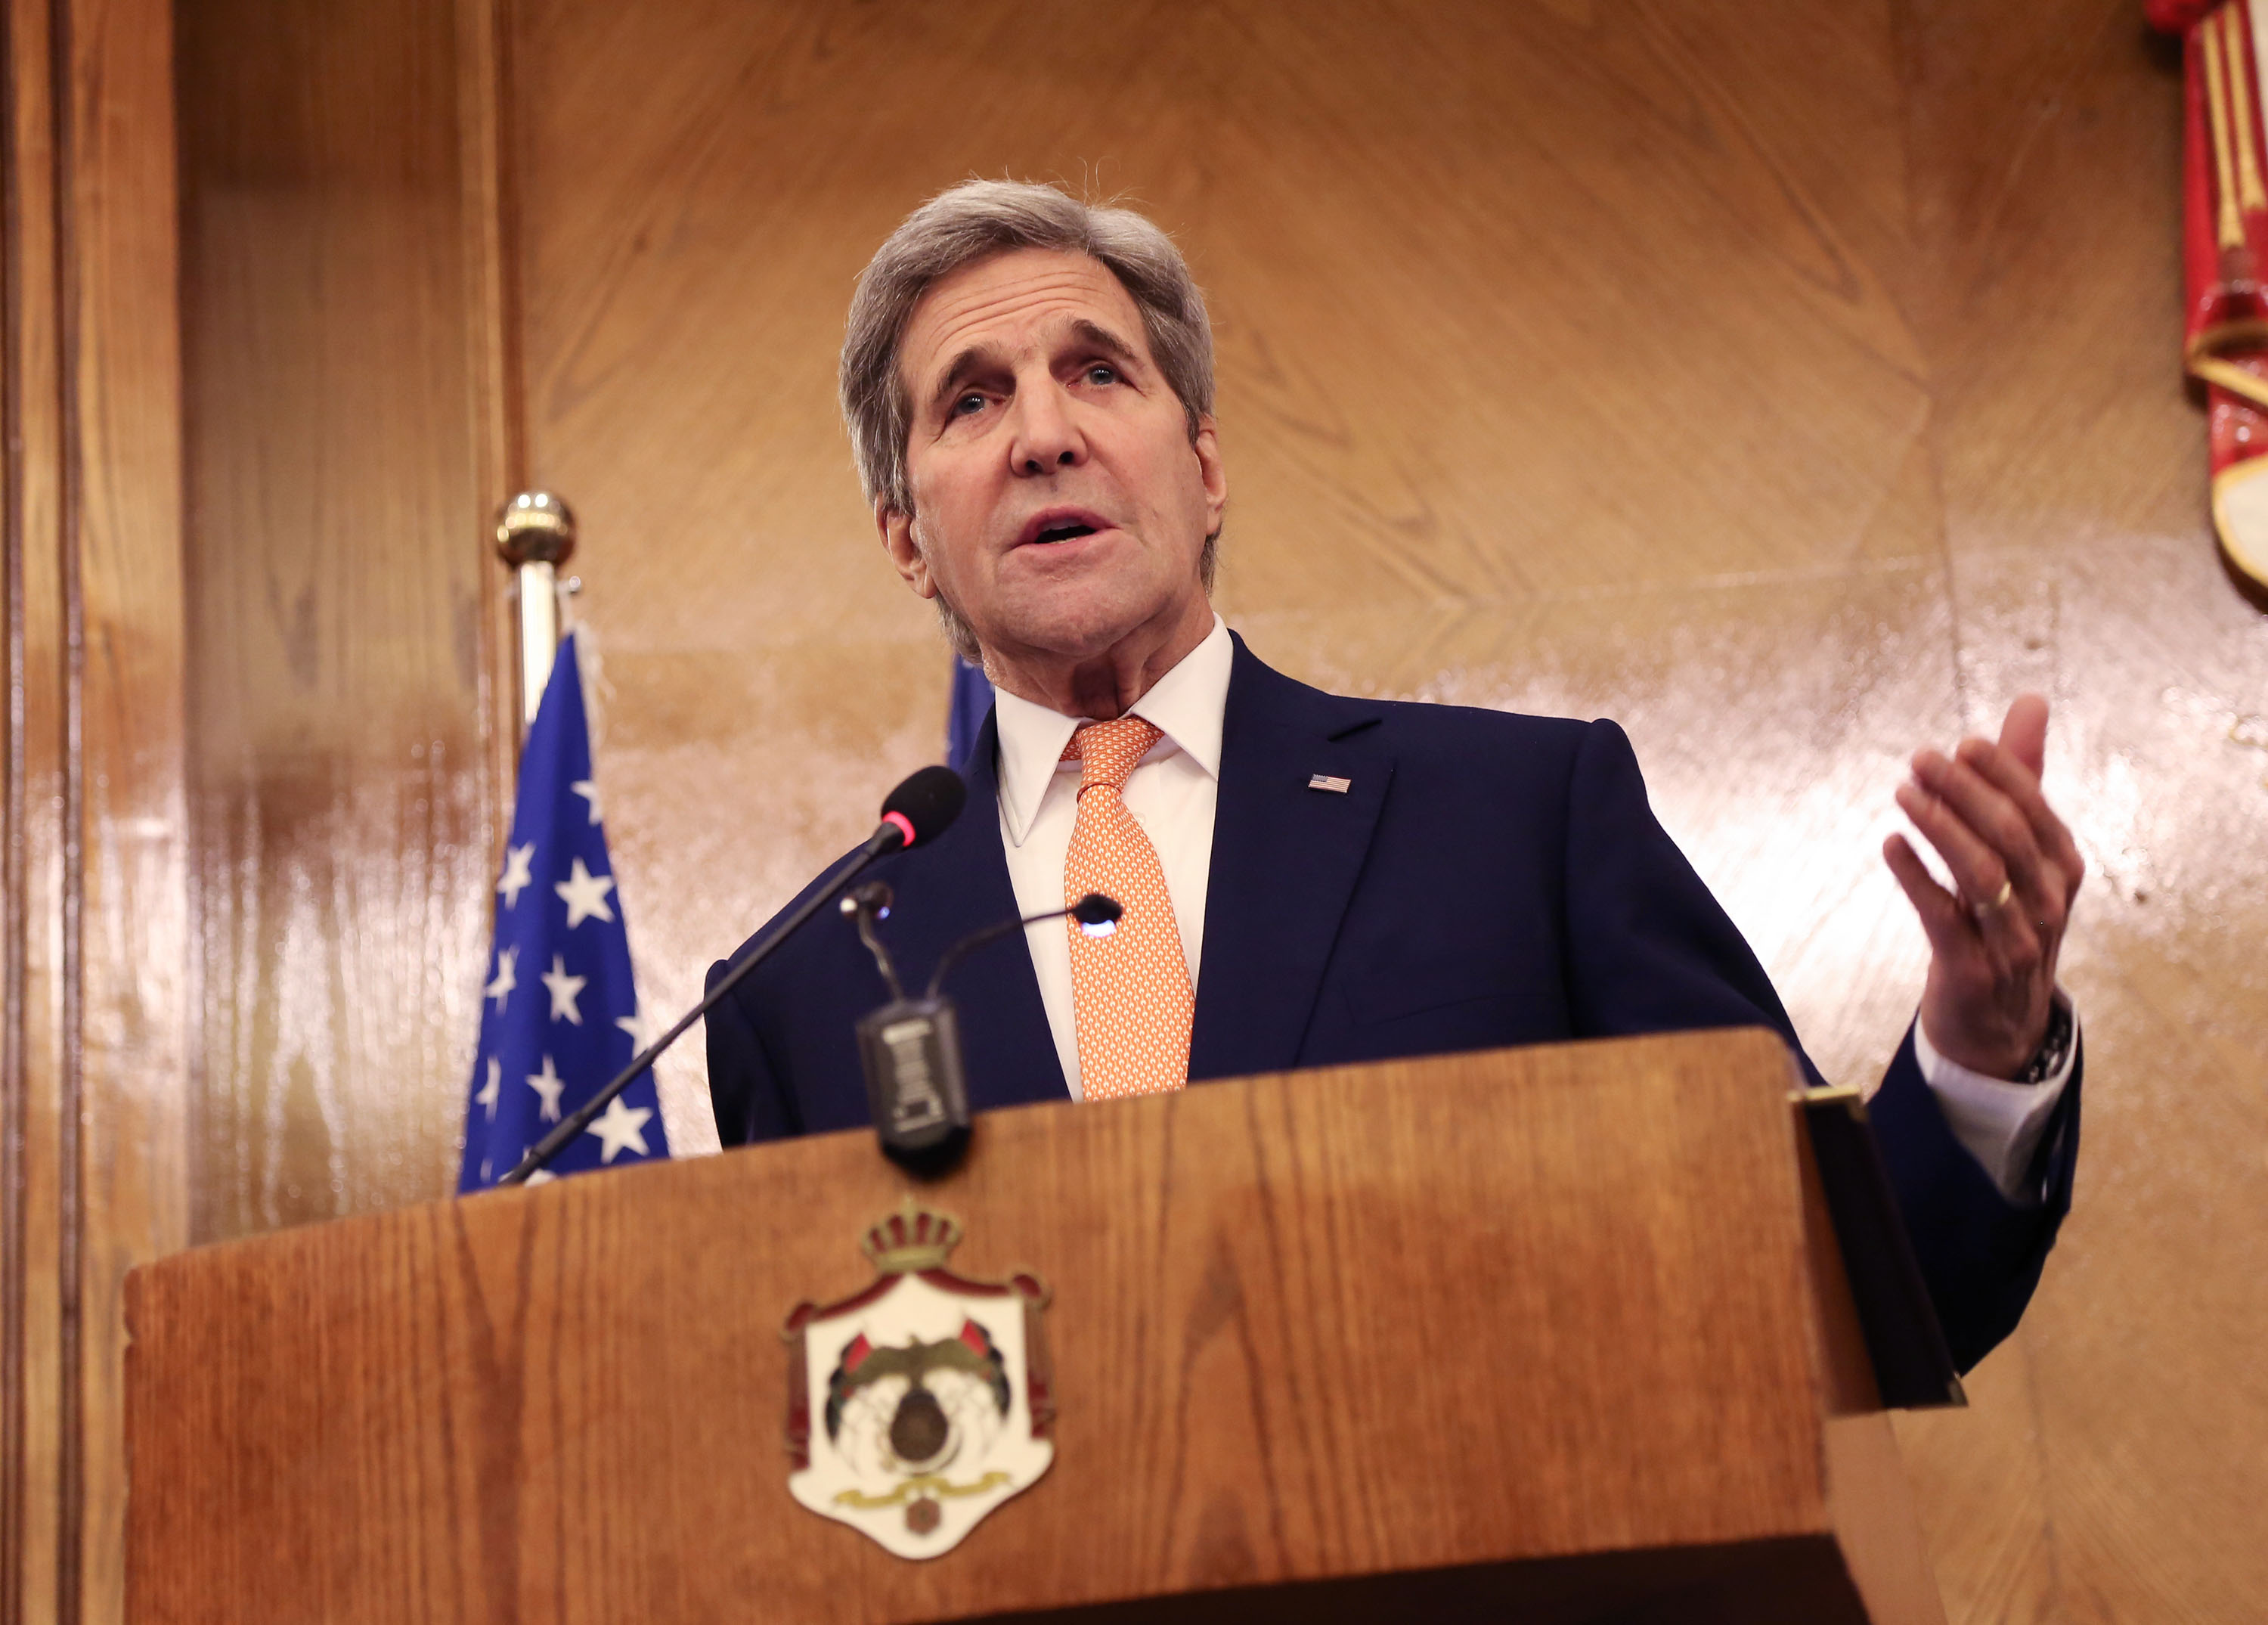 Secretary of State John Kerry gestures during a joint press conference with his Jordanian counterpart Nasser Judeh (unseen) in Amman, Jordan, Feb. 21, 2016.